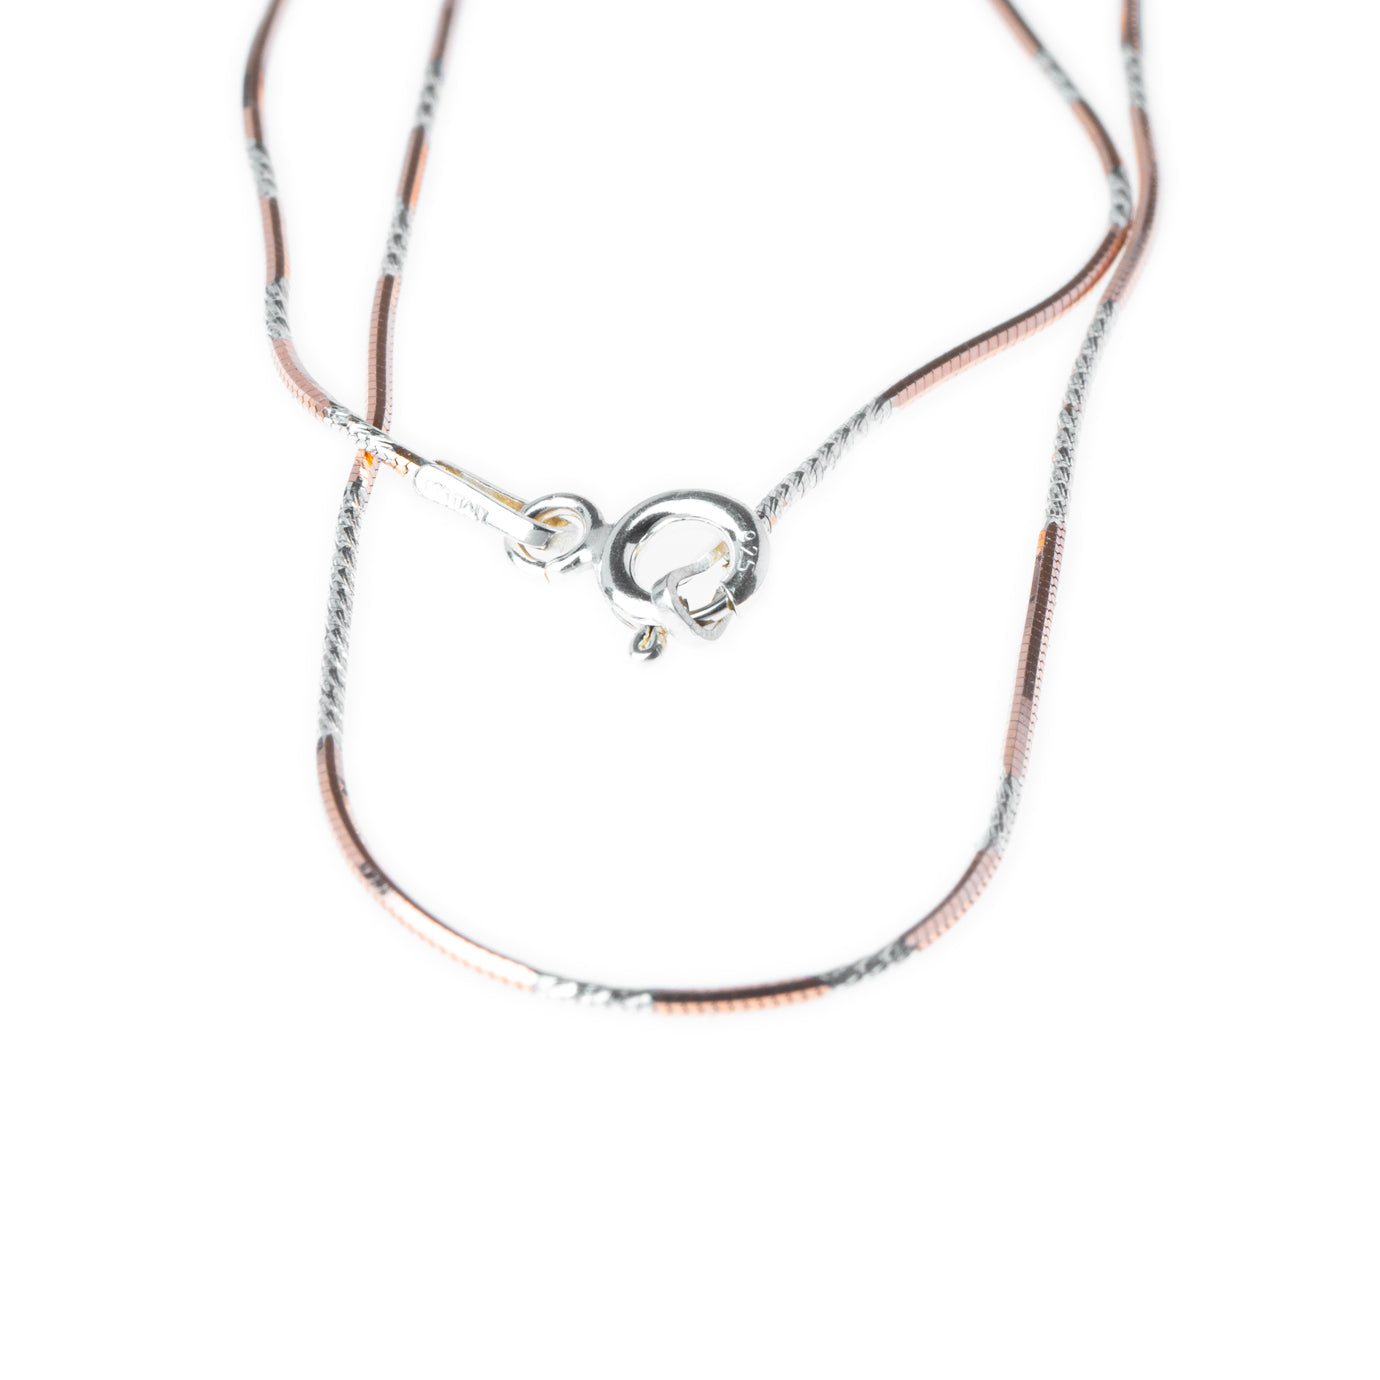 Sterling Silver Snake Chain with Rose Gold Plating with Ring Clasp C-7944